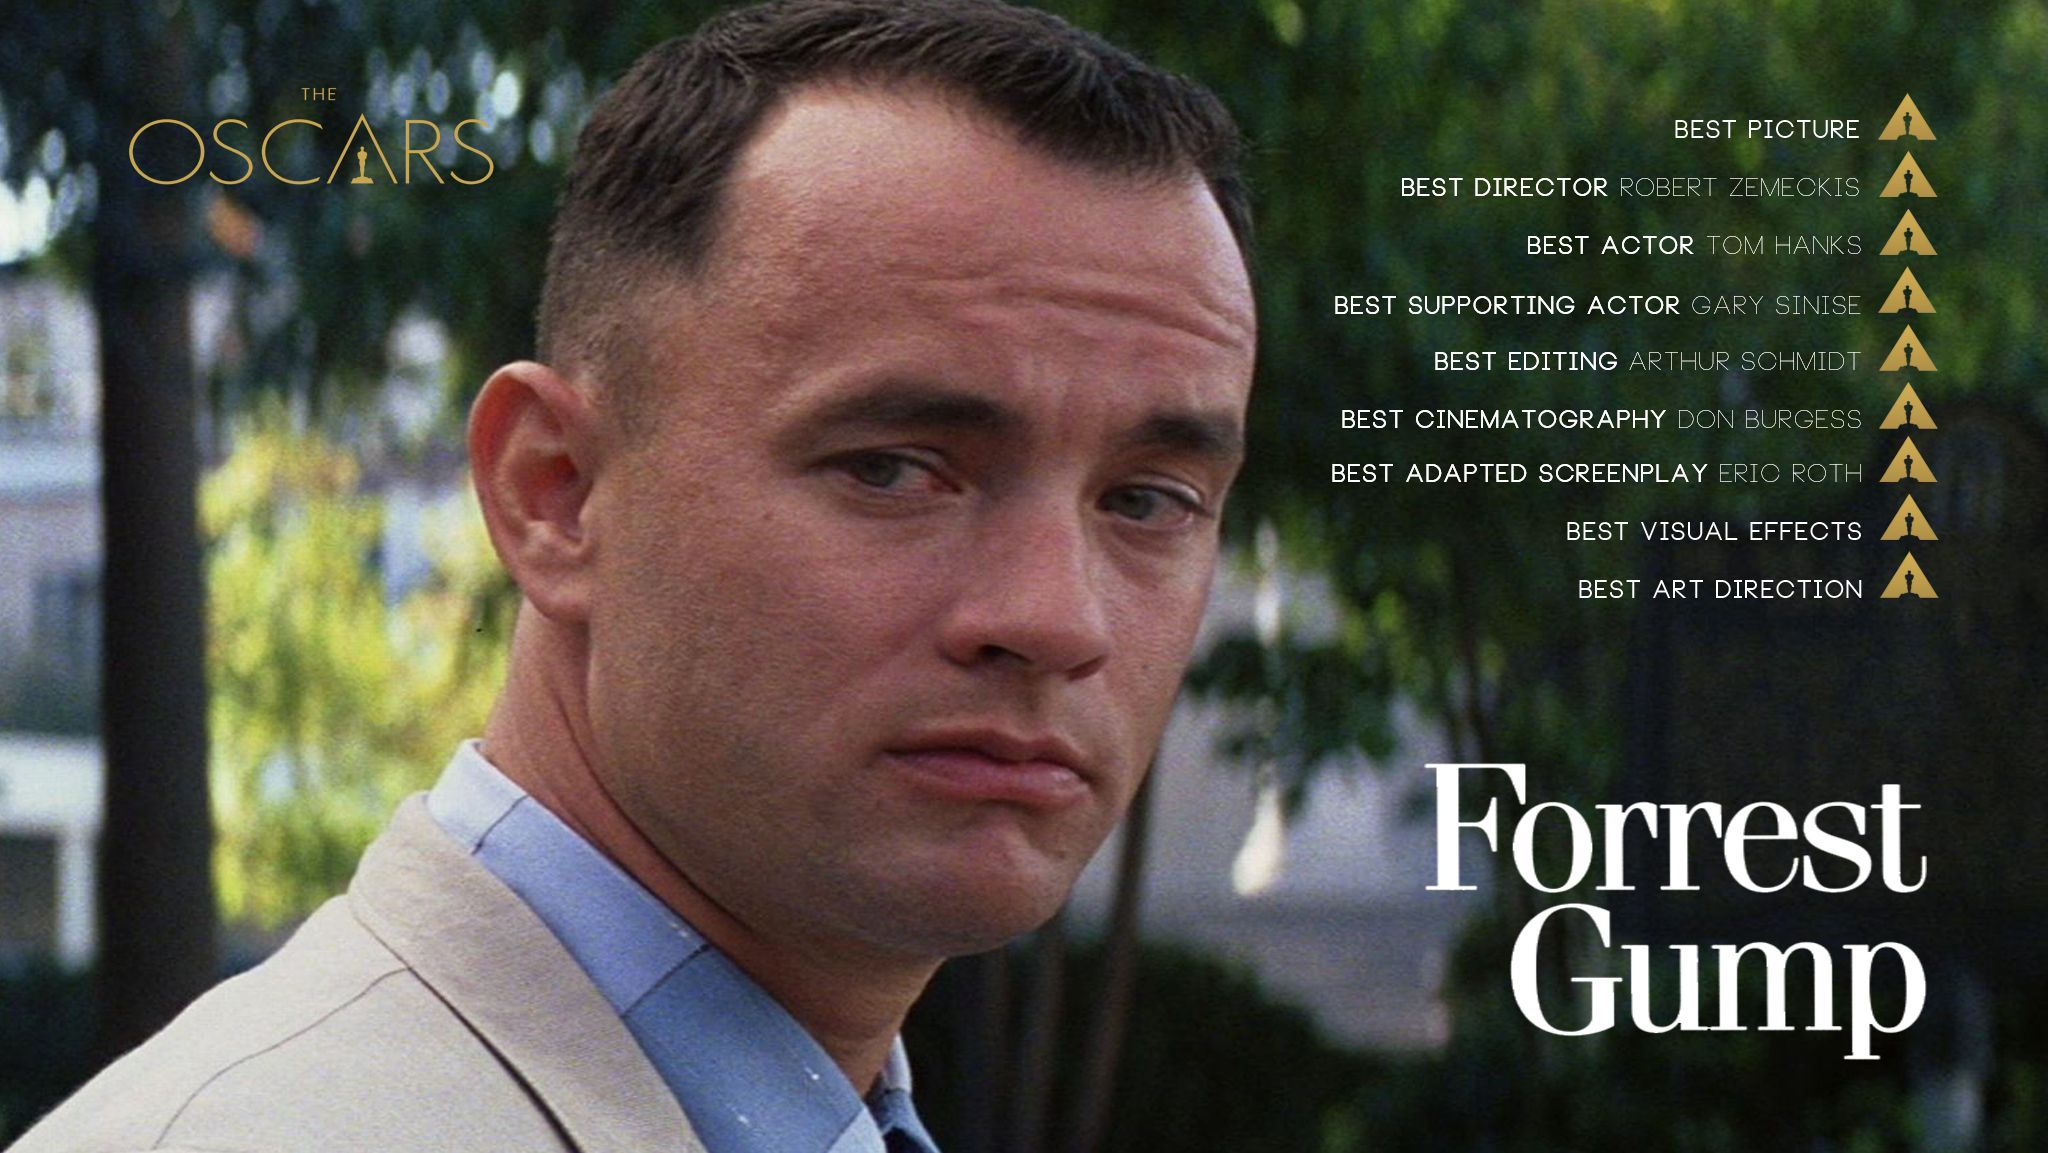 Fun Facts: Forrest Gump